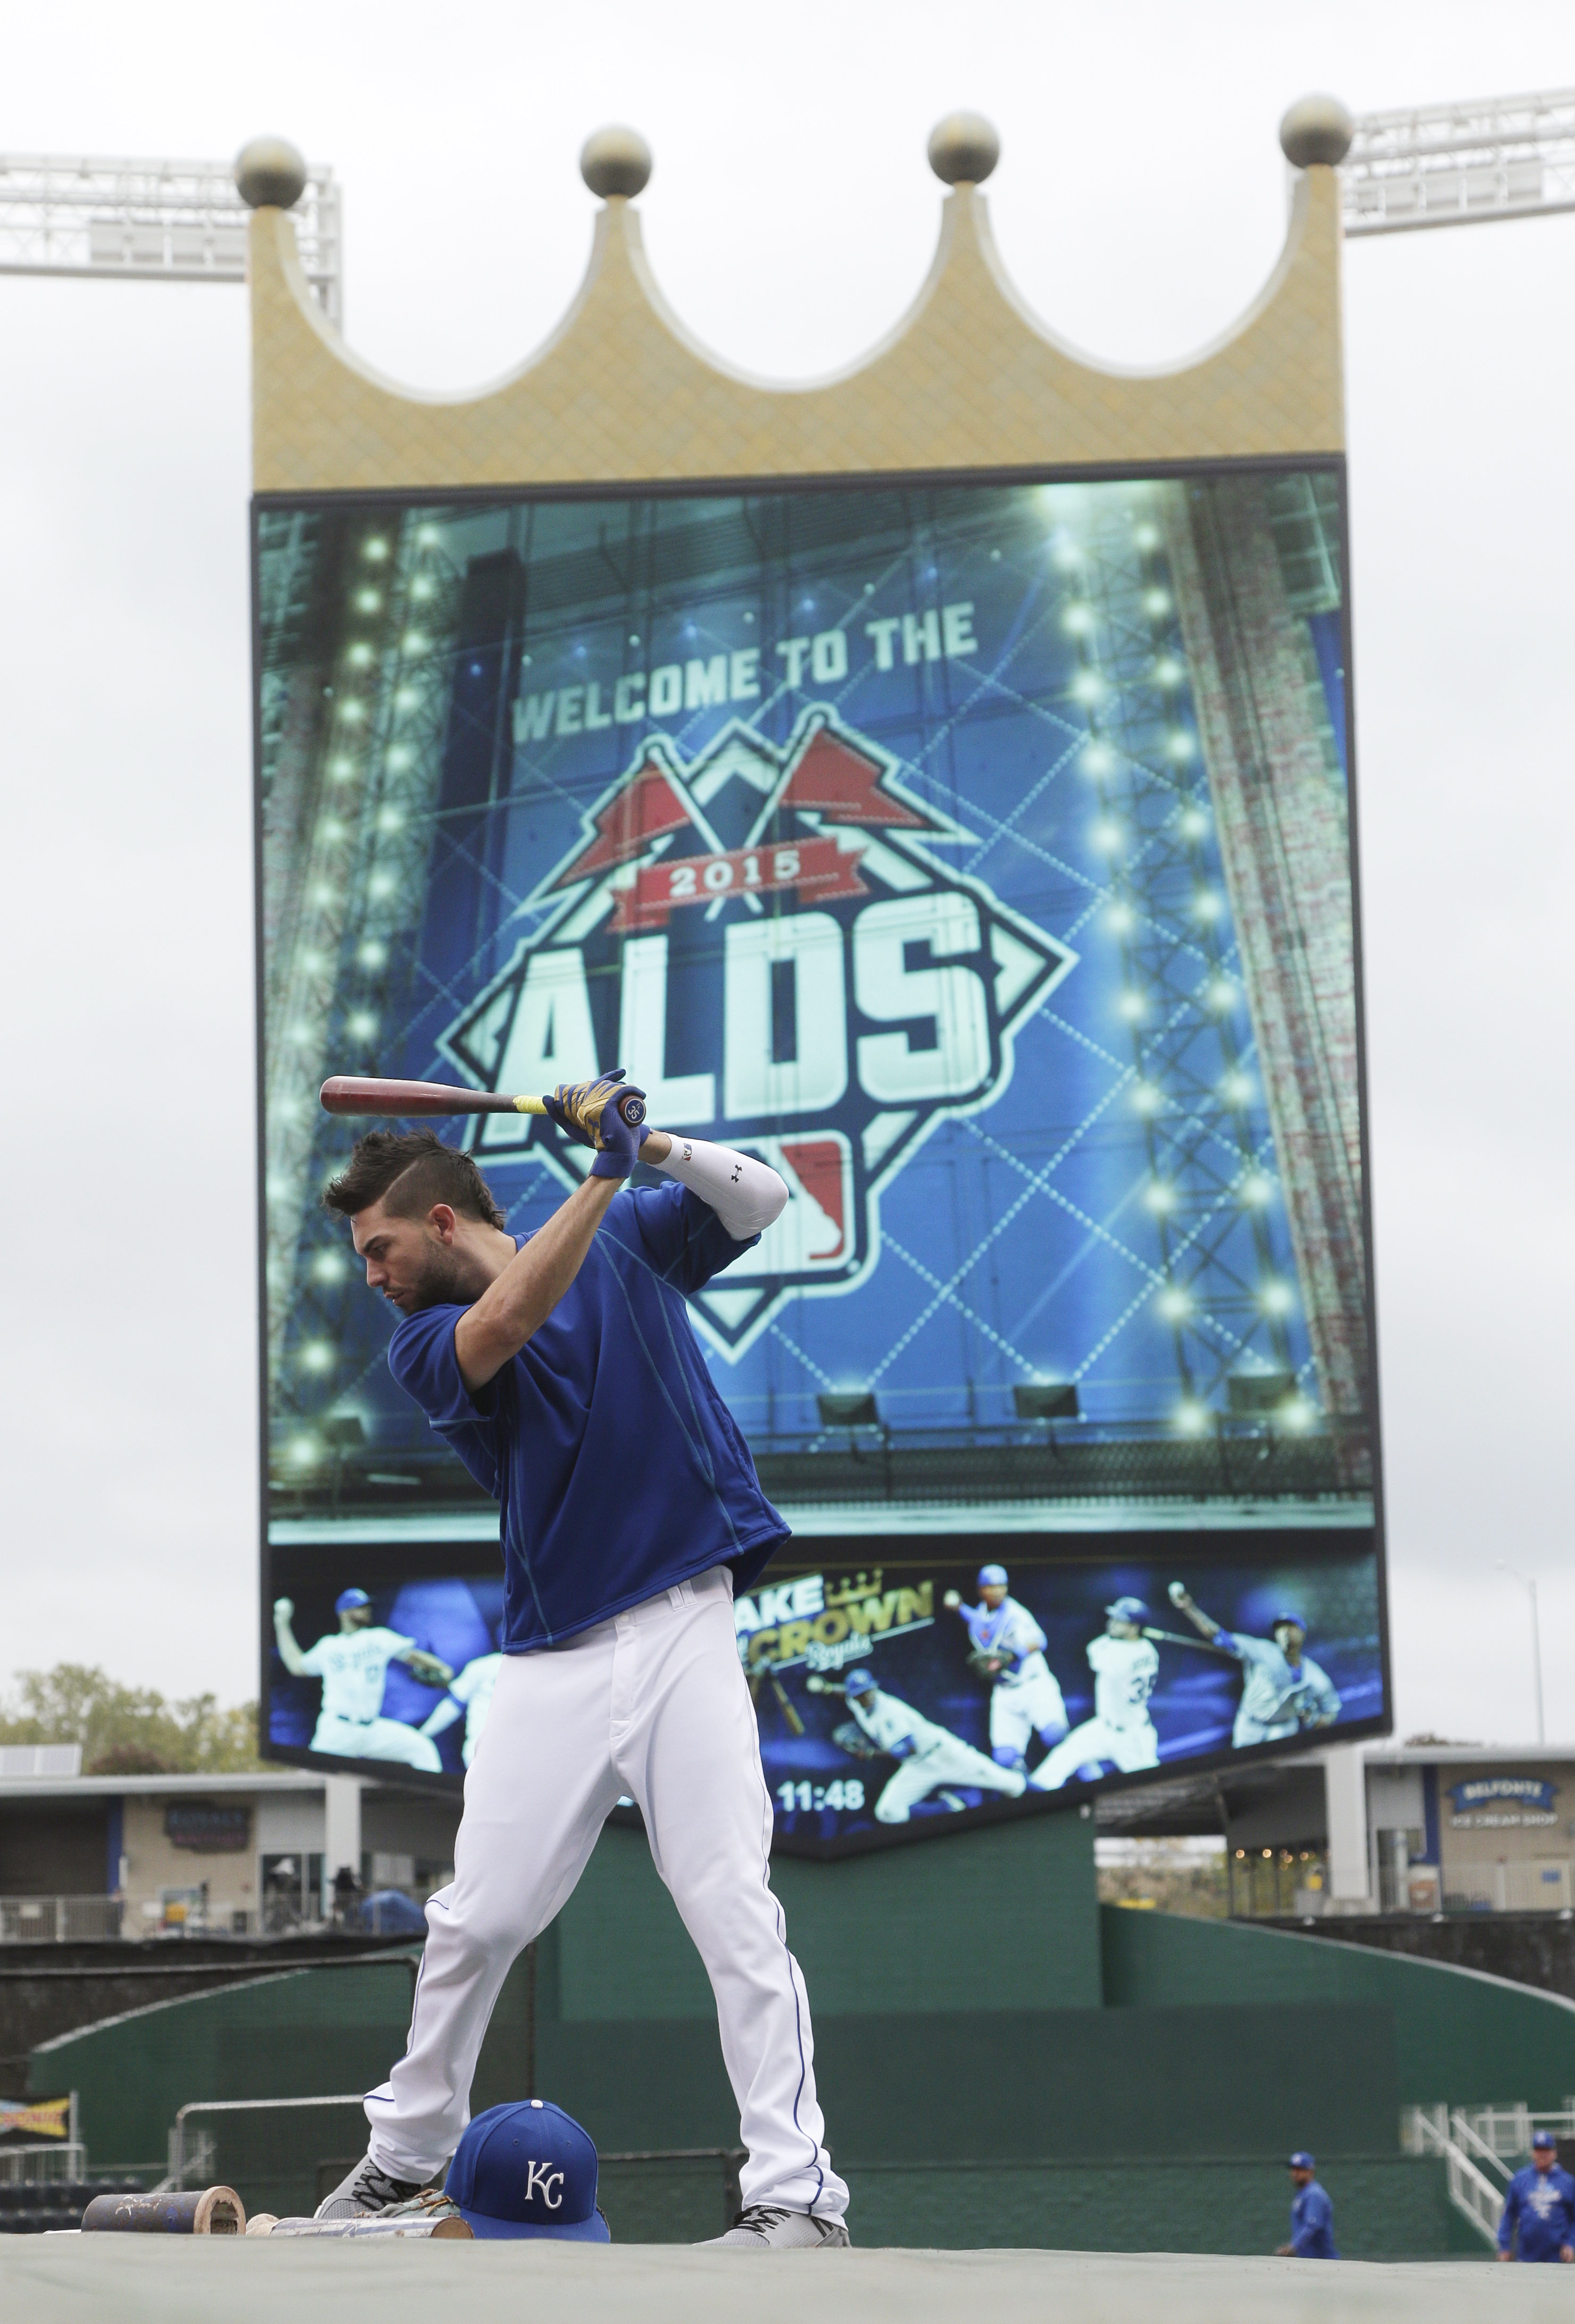 Kansas City Royals first baseman Eric Hosmer waits to take batting practice before Game 2 in baseball's American League Division Series against the Houston Astros, Friday, Oct. 9, 2015, in Kansas City, Mo. (AP Photo/Charlie Riedel)